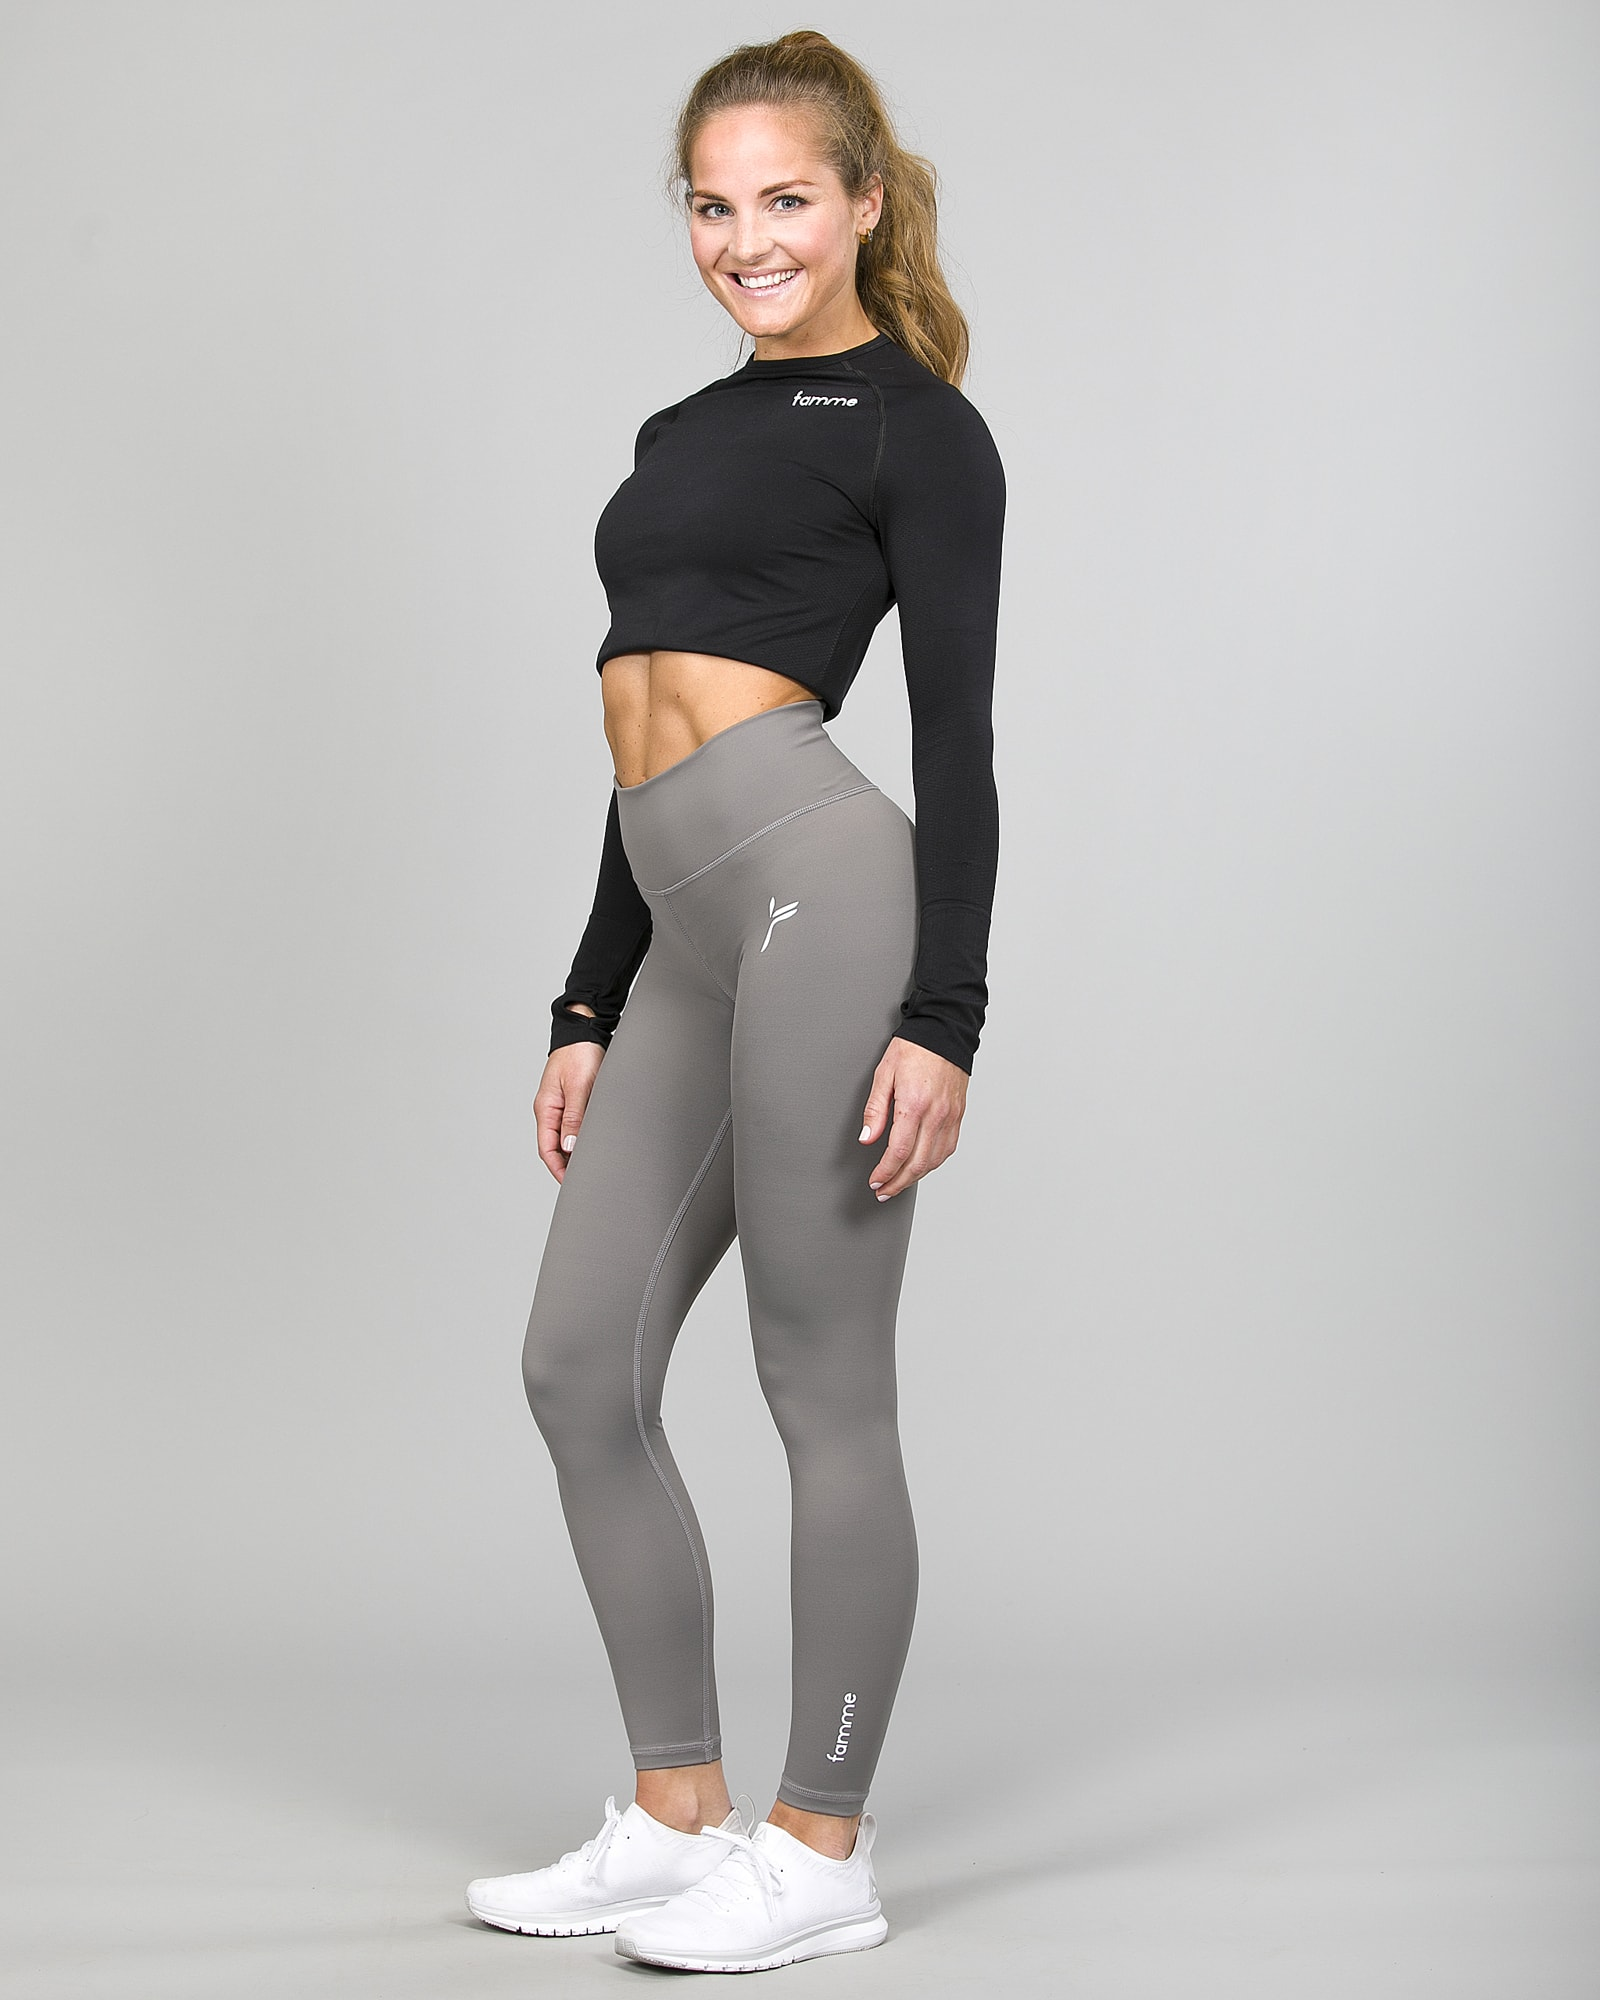 Famme Ocean Crop Top Black ocls-bk and Essential High Waist Legging - Grey ehwt-gr d